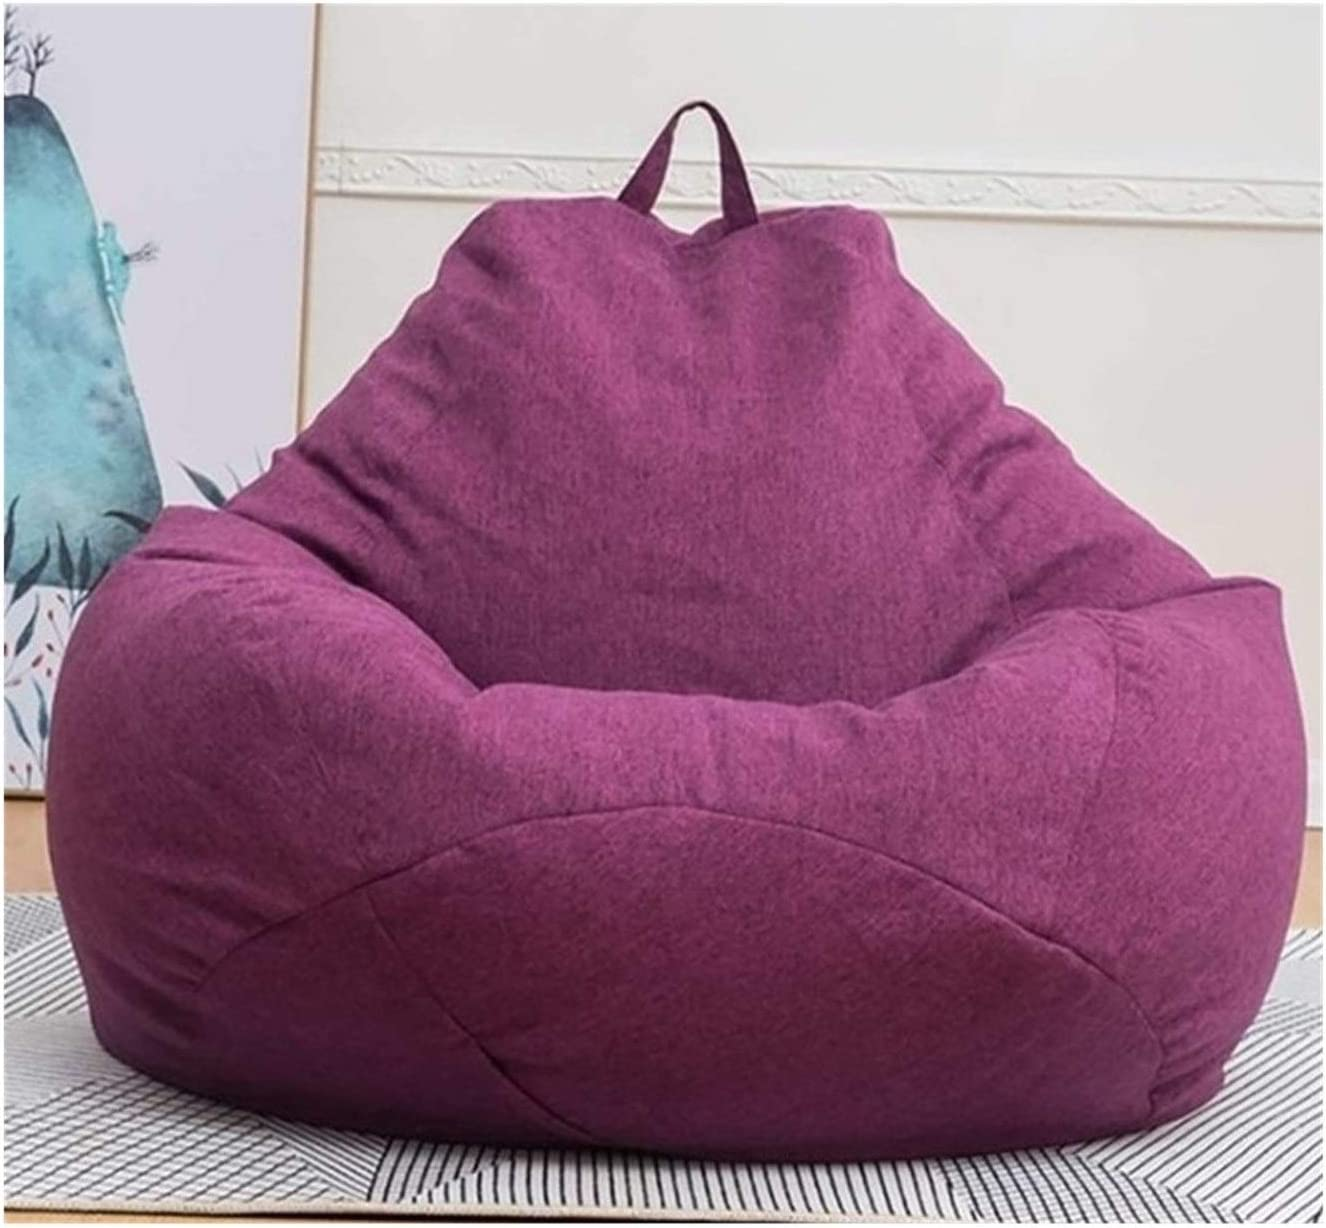 BXJPN Lazy BeanBag Sofas Cover Without Linen Cloth Filler online shopping Chairs Free Shipping New